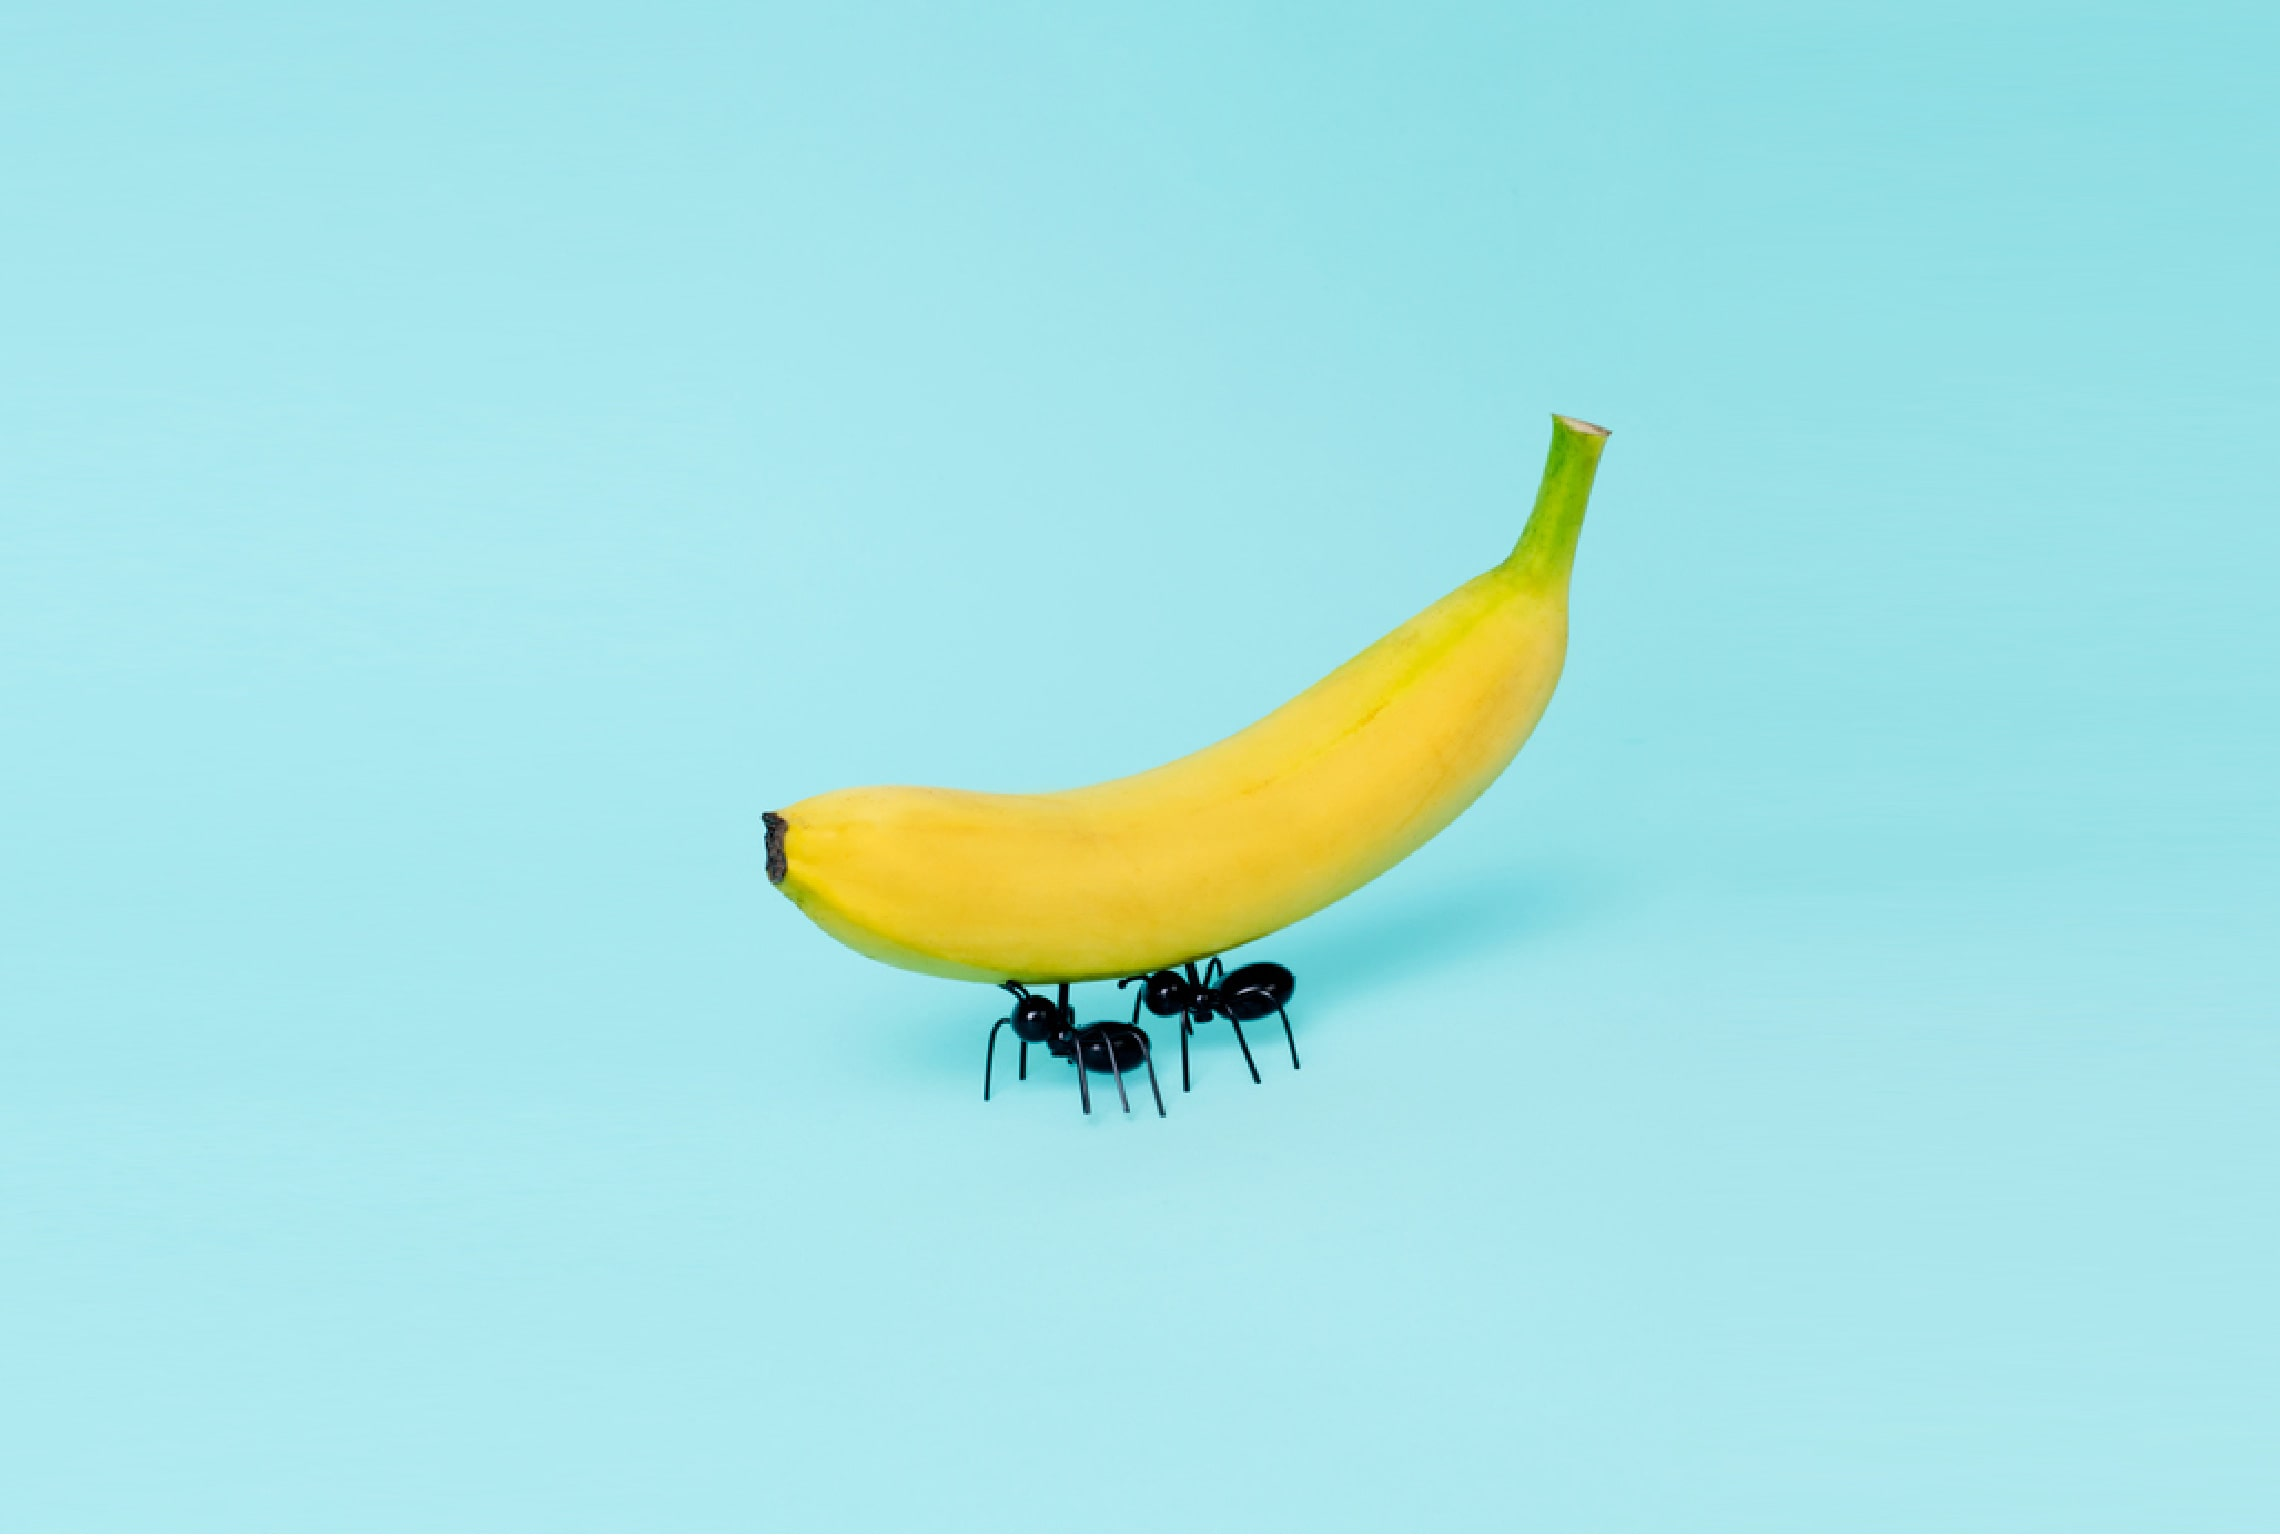 Ants collaborating to carry a banana